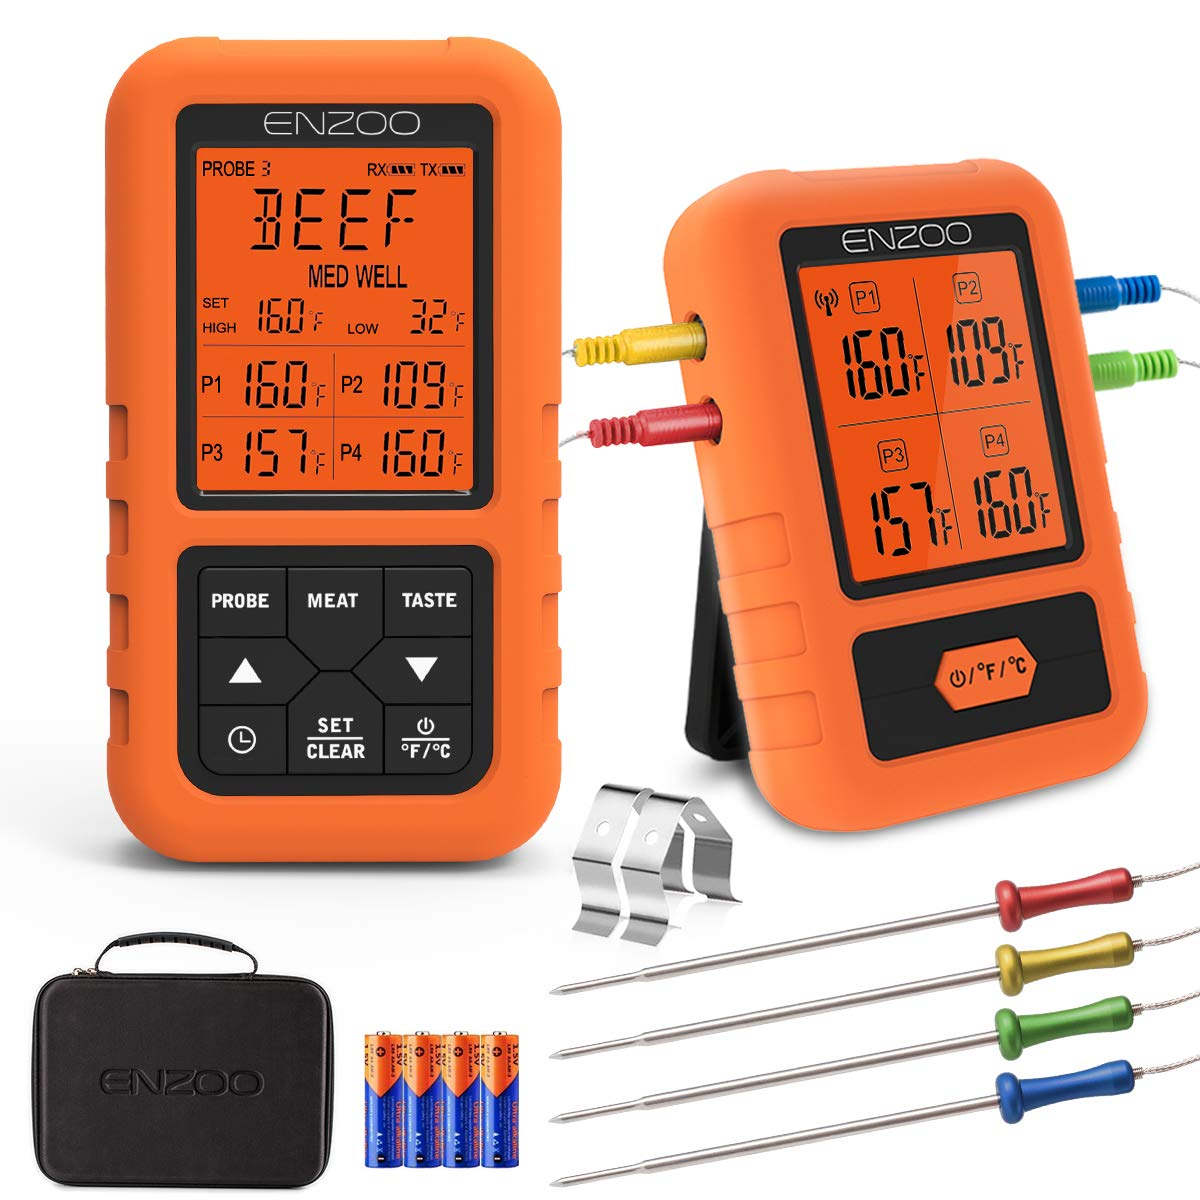 Digital Meat Thermometer for Grilling,ENZOO 2019 the Newest 500FT Wireless Ultra Fast Cooking Food Thermometer with 4 Probes,178°Wide View Angle Meat Thermometer for Kitchen, BBQ,Smoker,Milk by Cadence